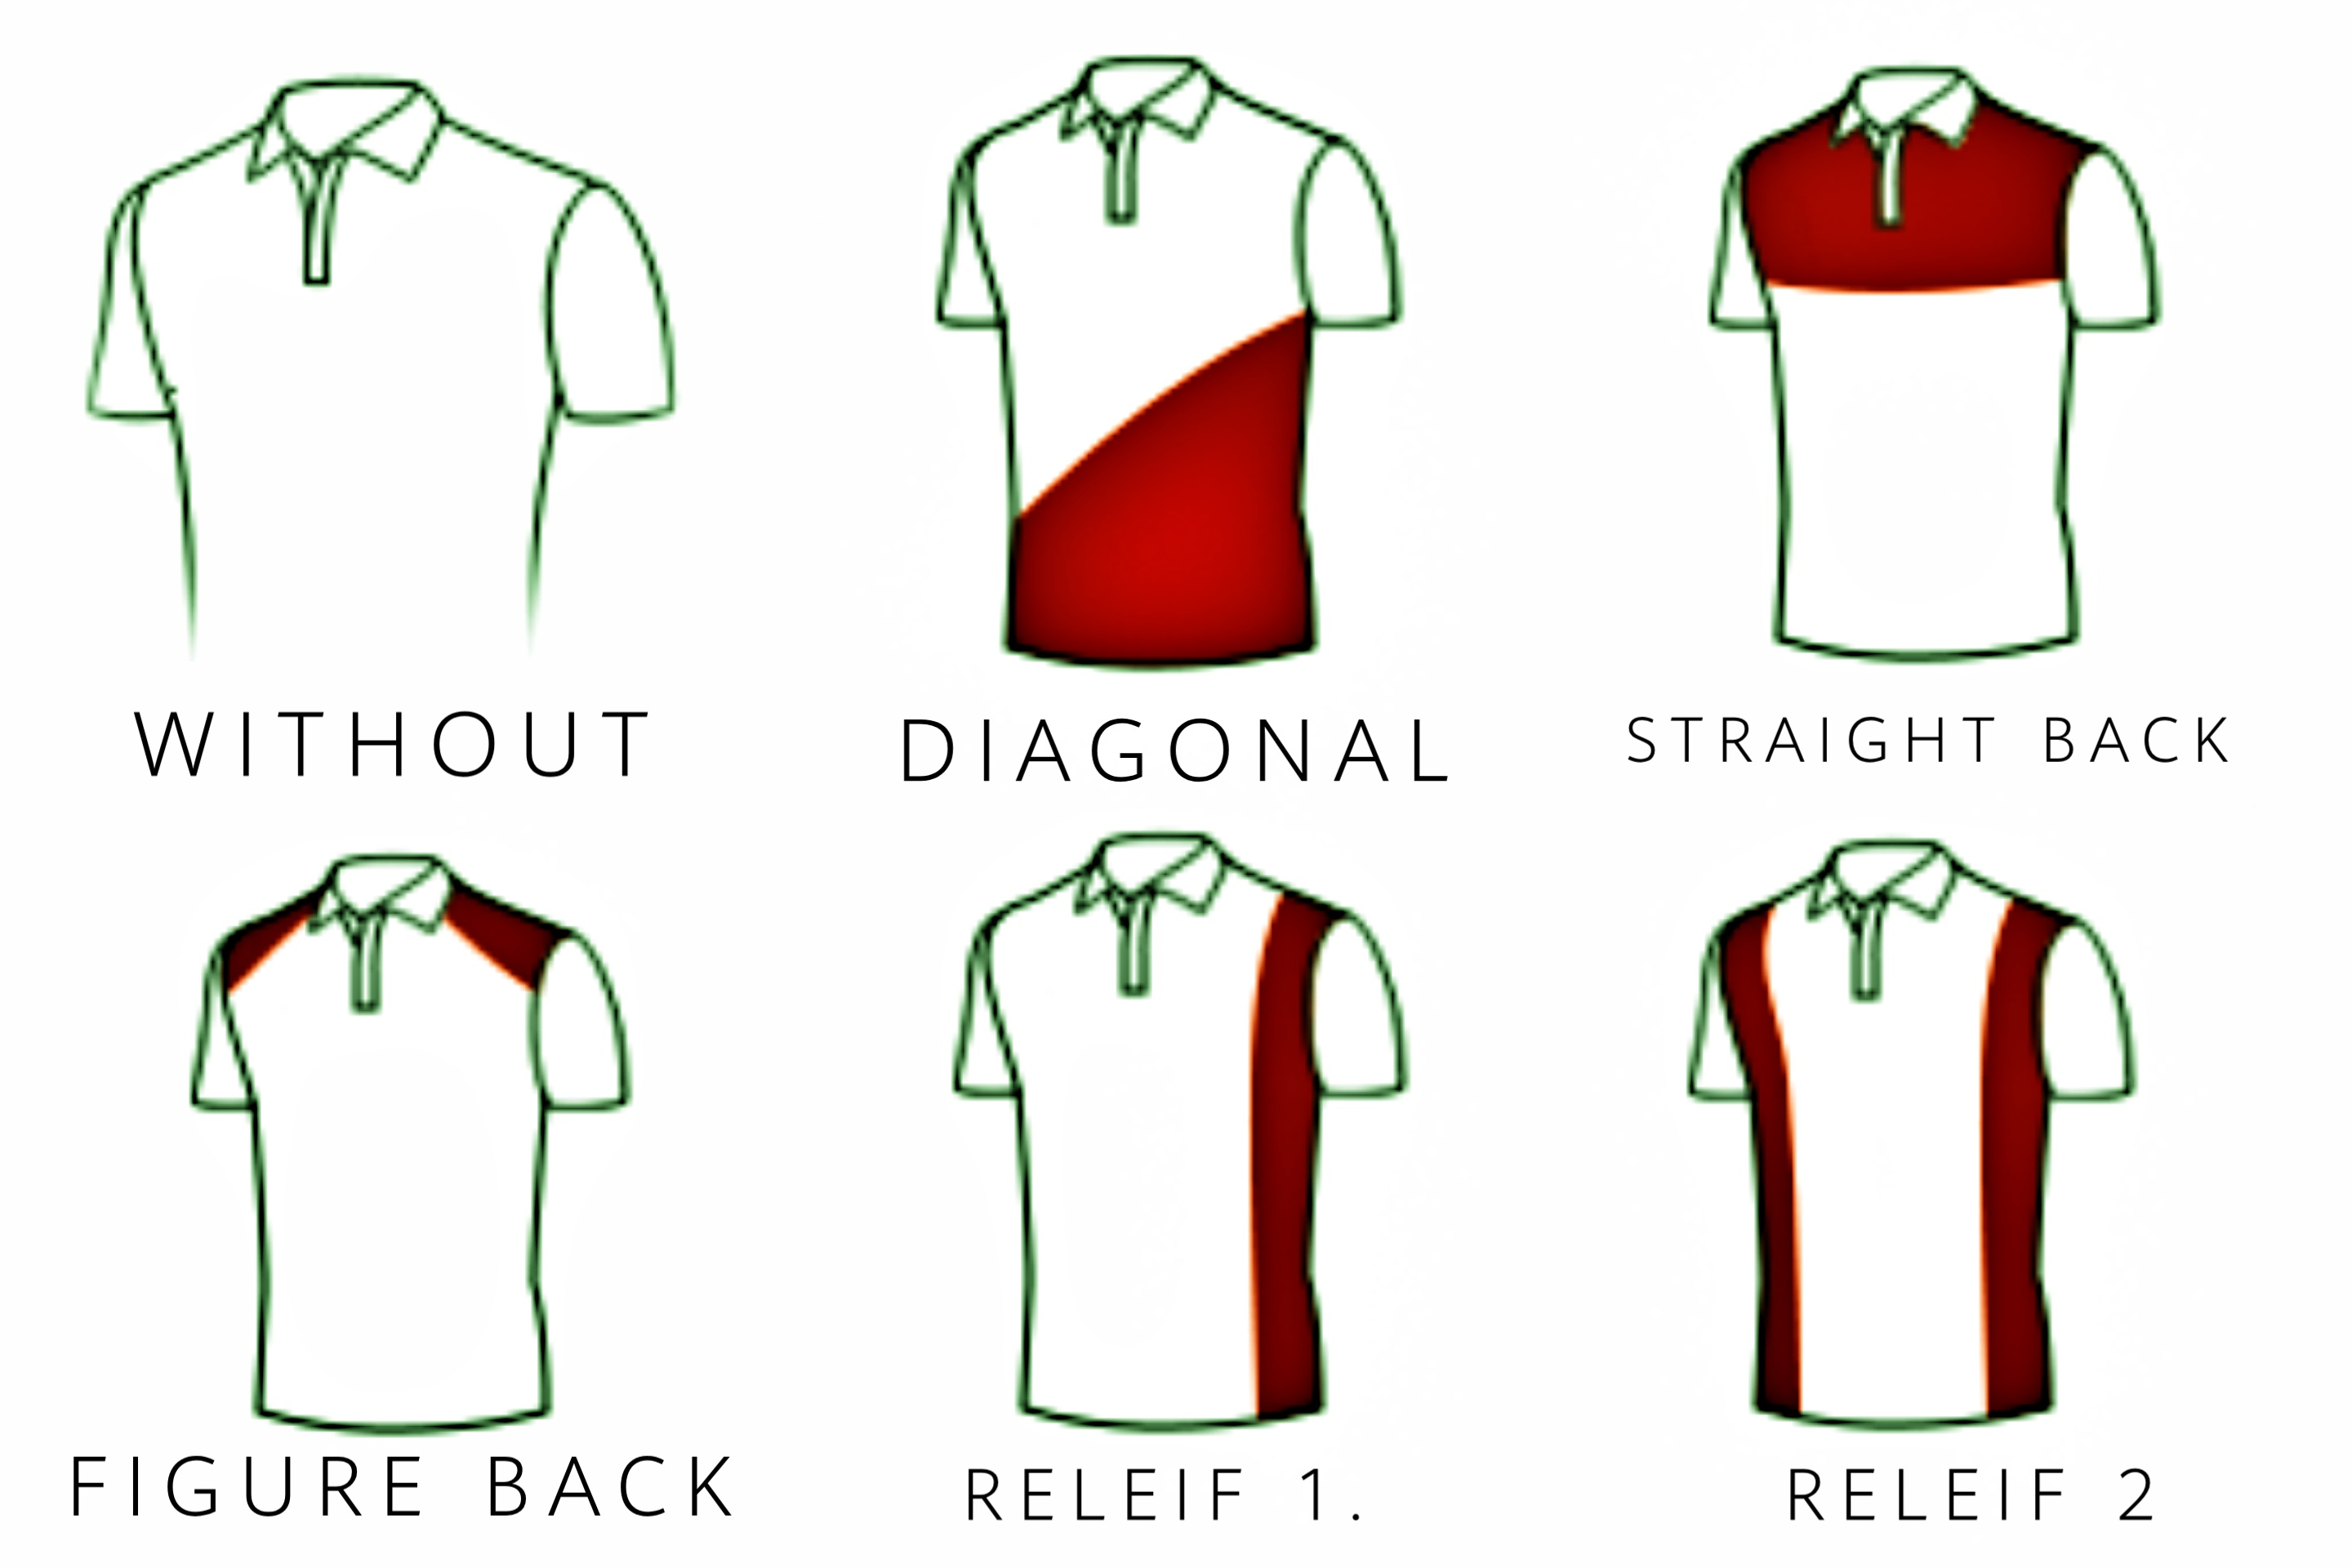 6 different Outlines of a lolo t-shirt's.